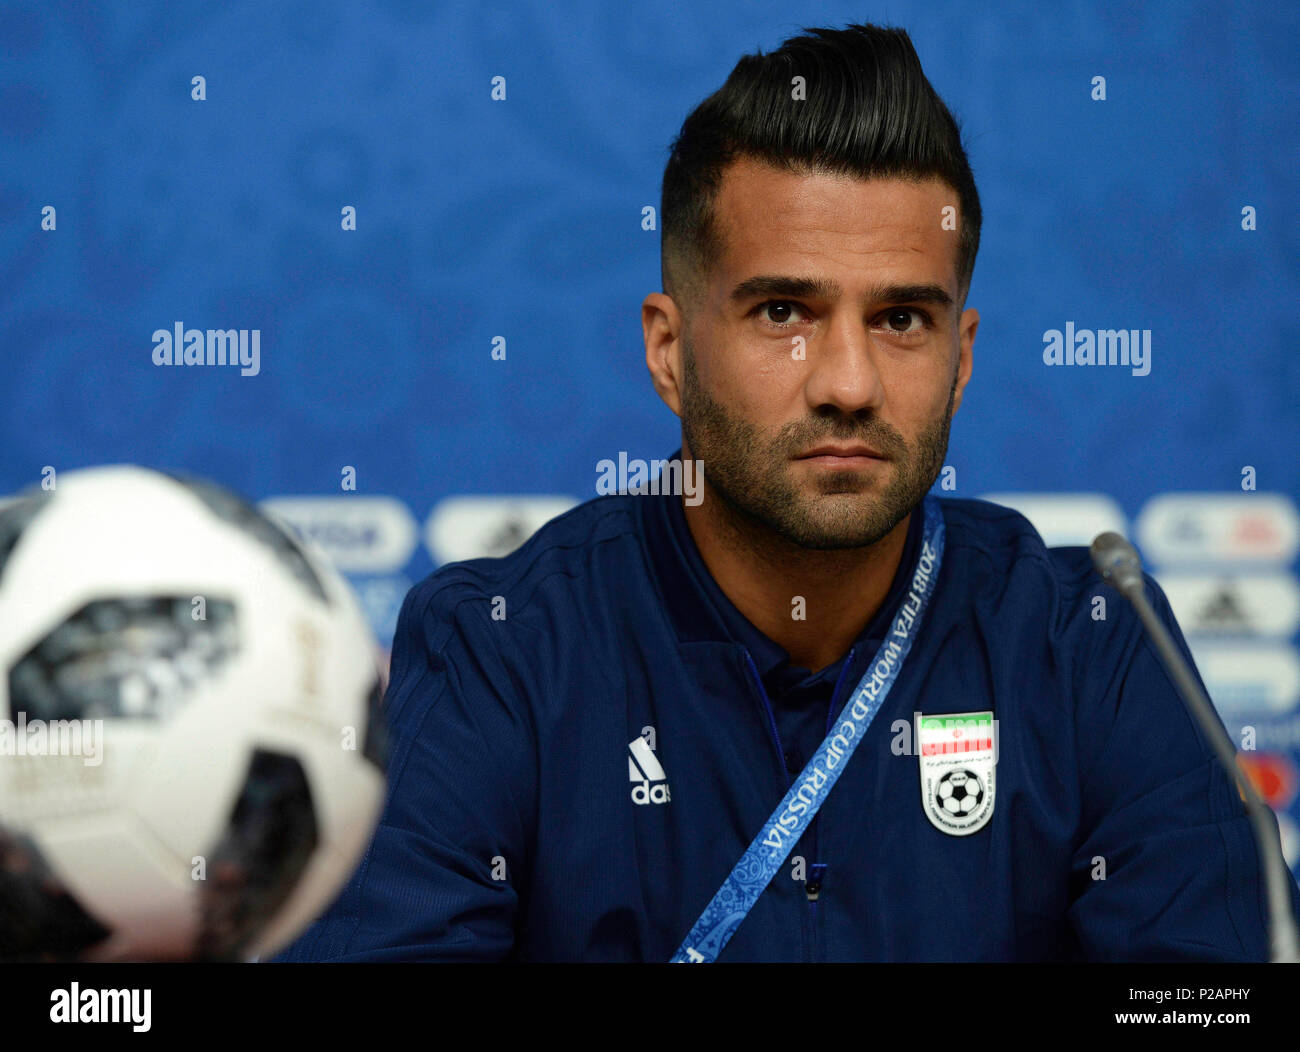 Fifa World Cup Russia Pre Game Conference Of Iran National Team In The Picture Player Of Iran National Team Masoud Shojaei